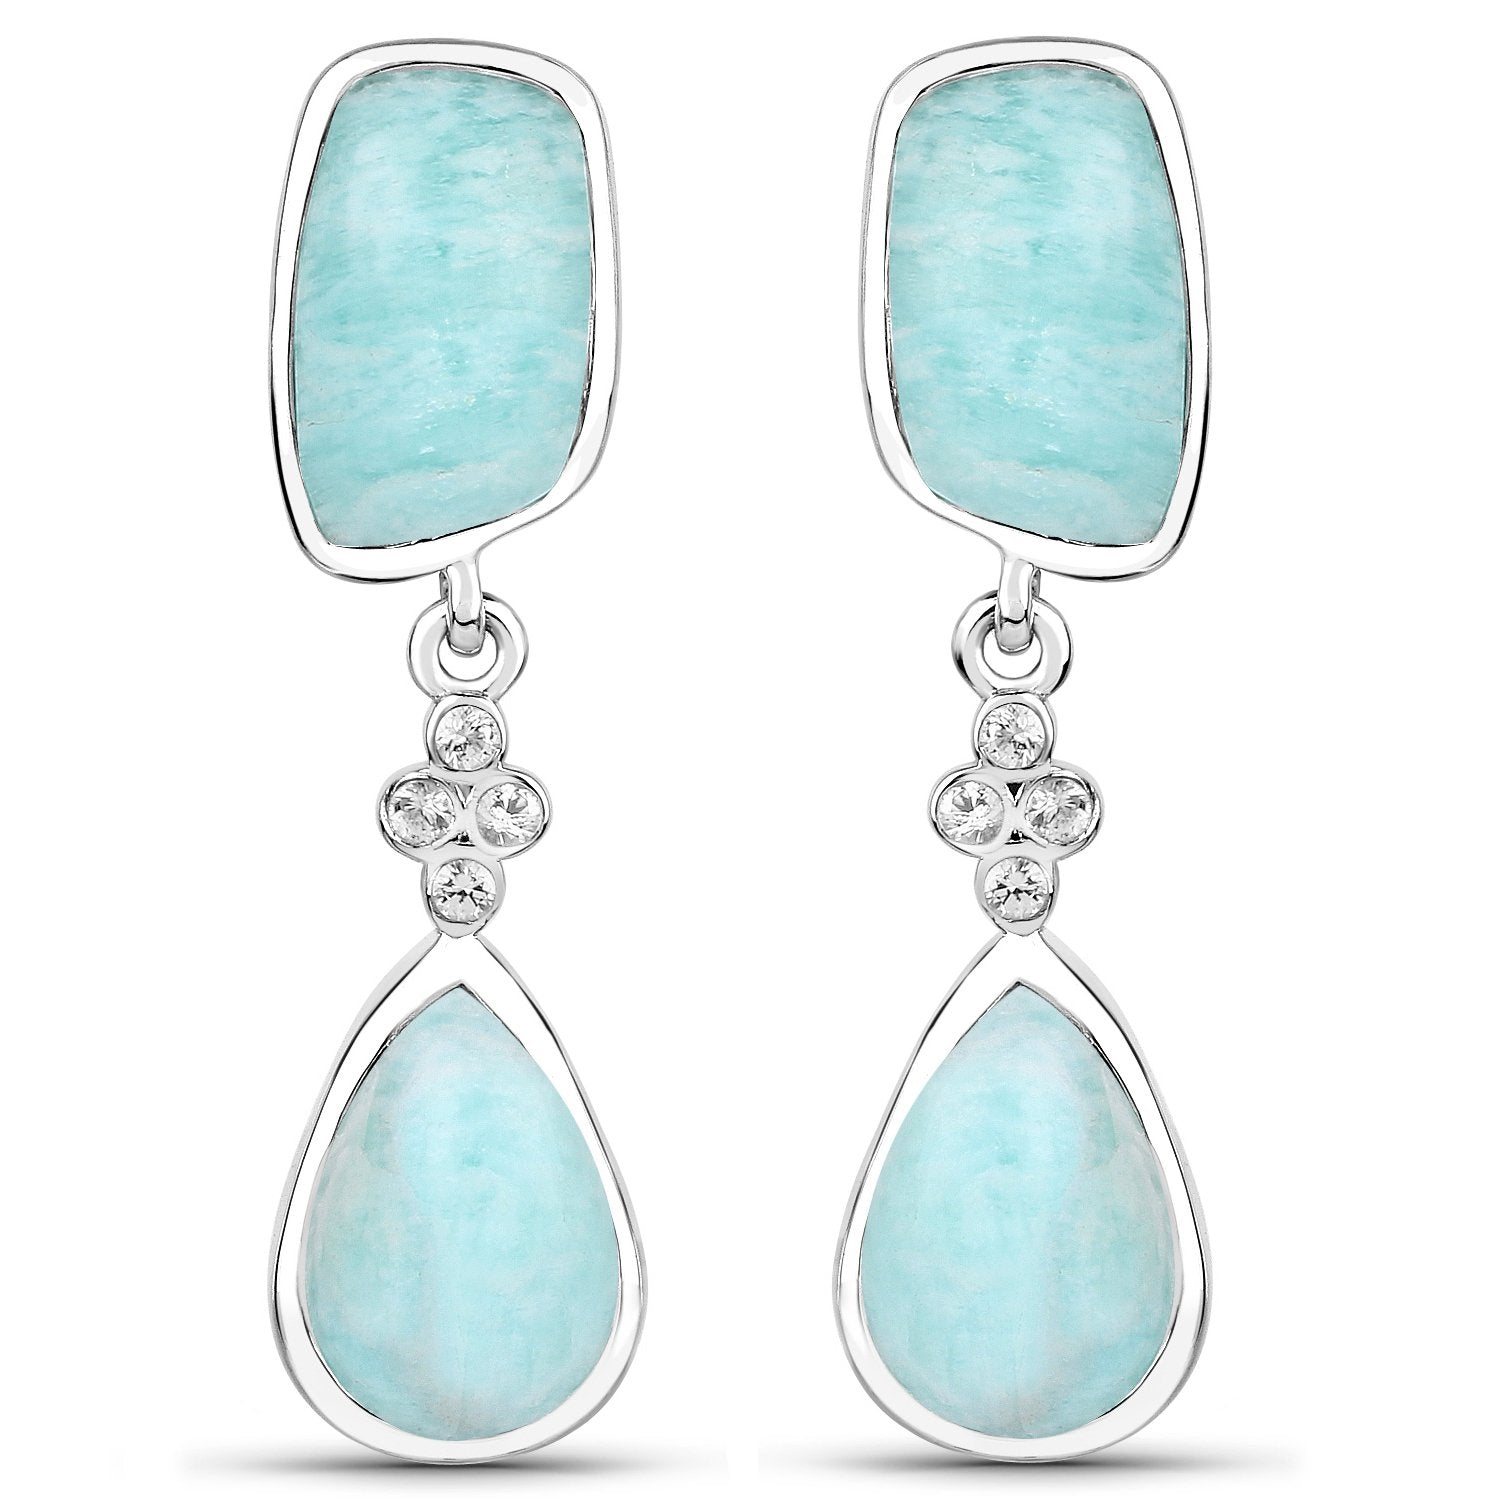 LoveHuang 11.90 Carats Genuine Amazonite and White Topaz Dangle Earrings Solid .925 Sterling Silver With Rhodium Plating